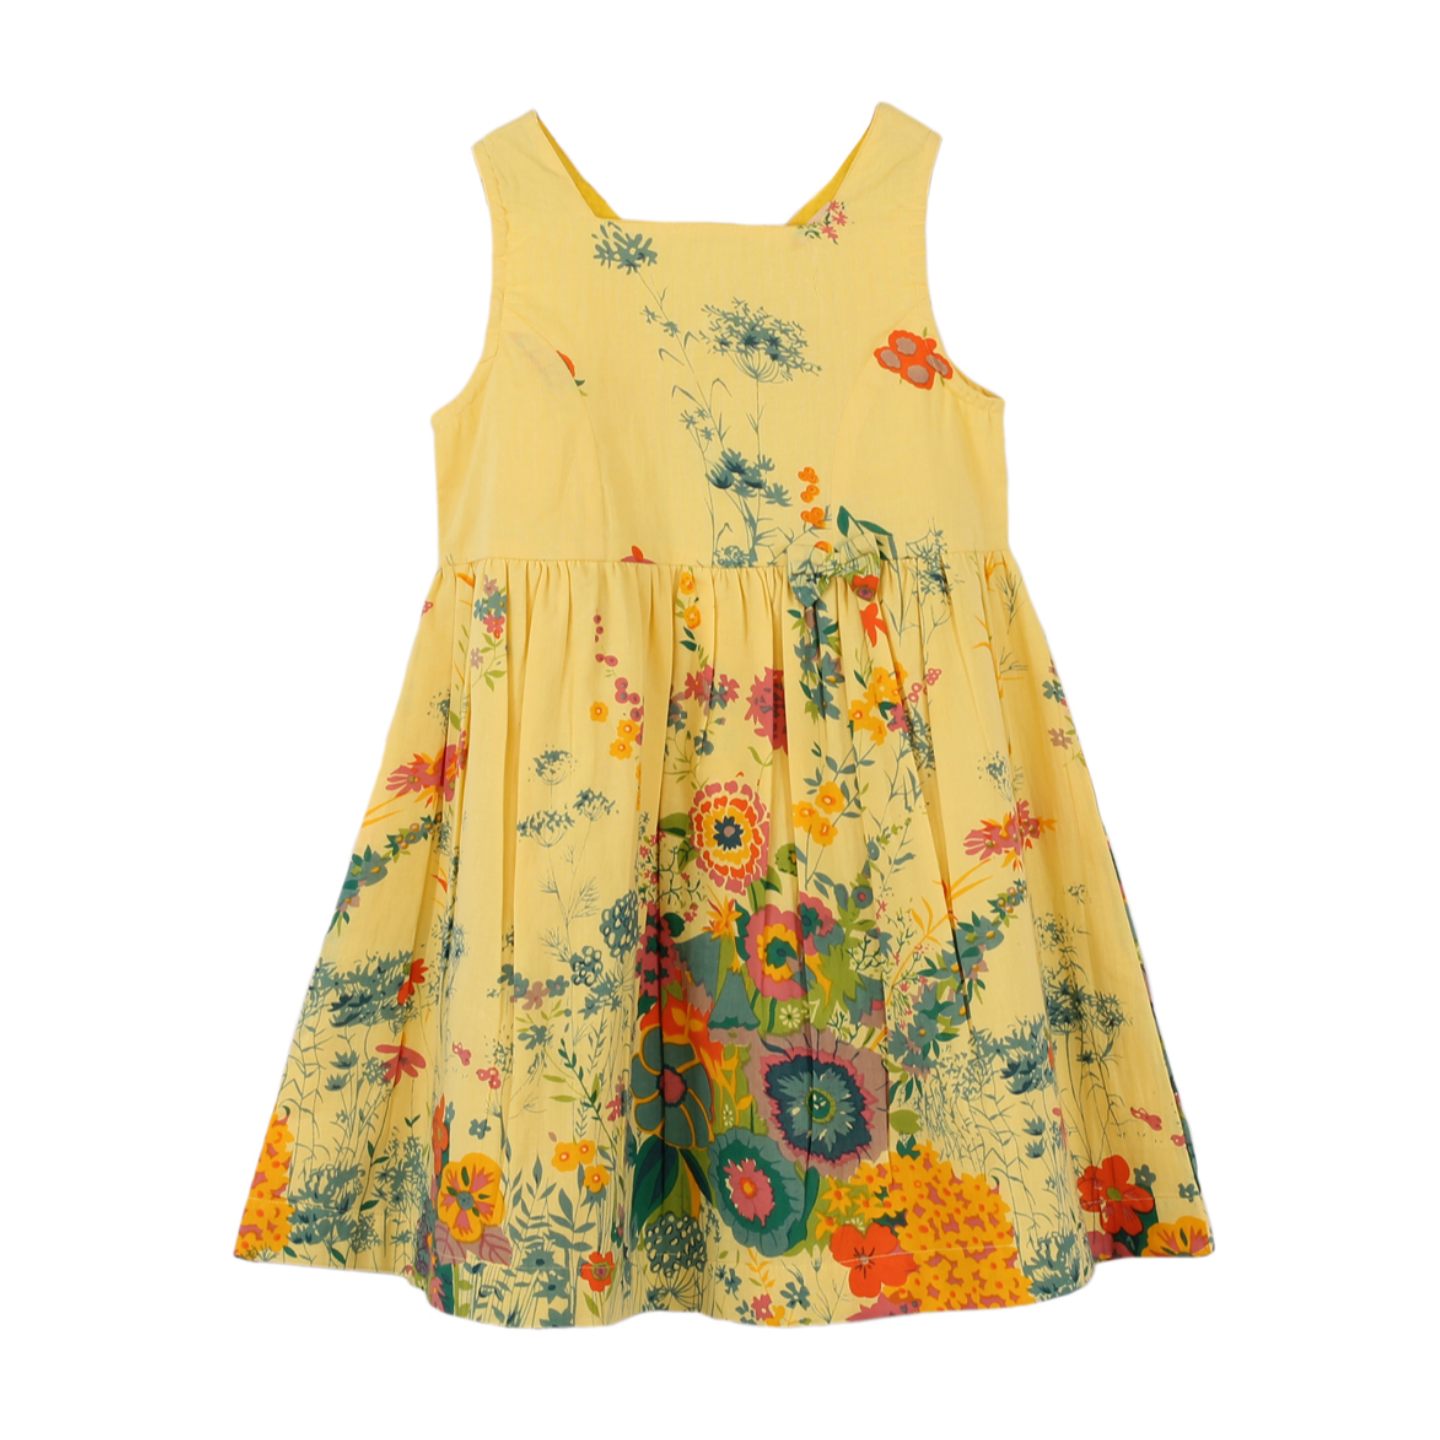 Garden yellow dress